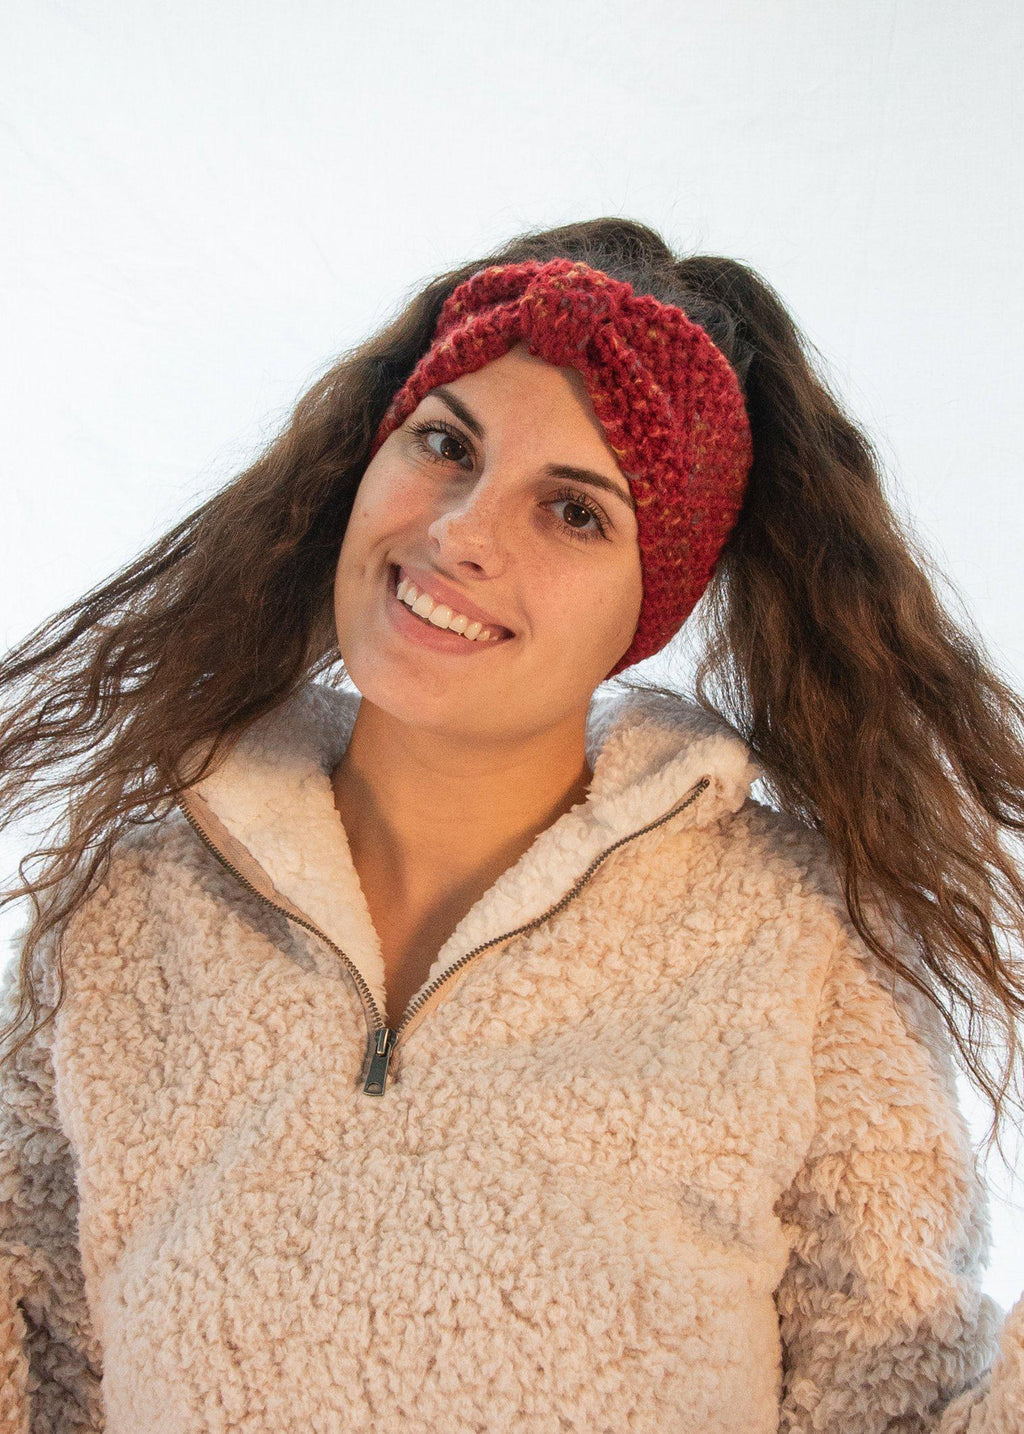 The Cozy Sweater Head Wrap-Luminous Sky Boutique